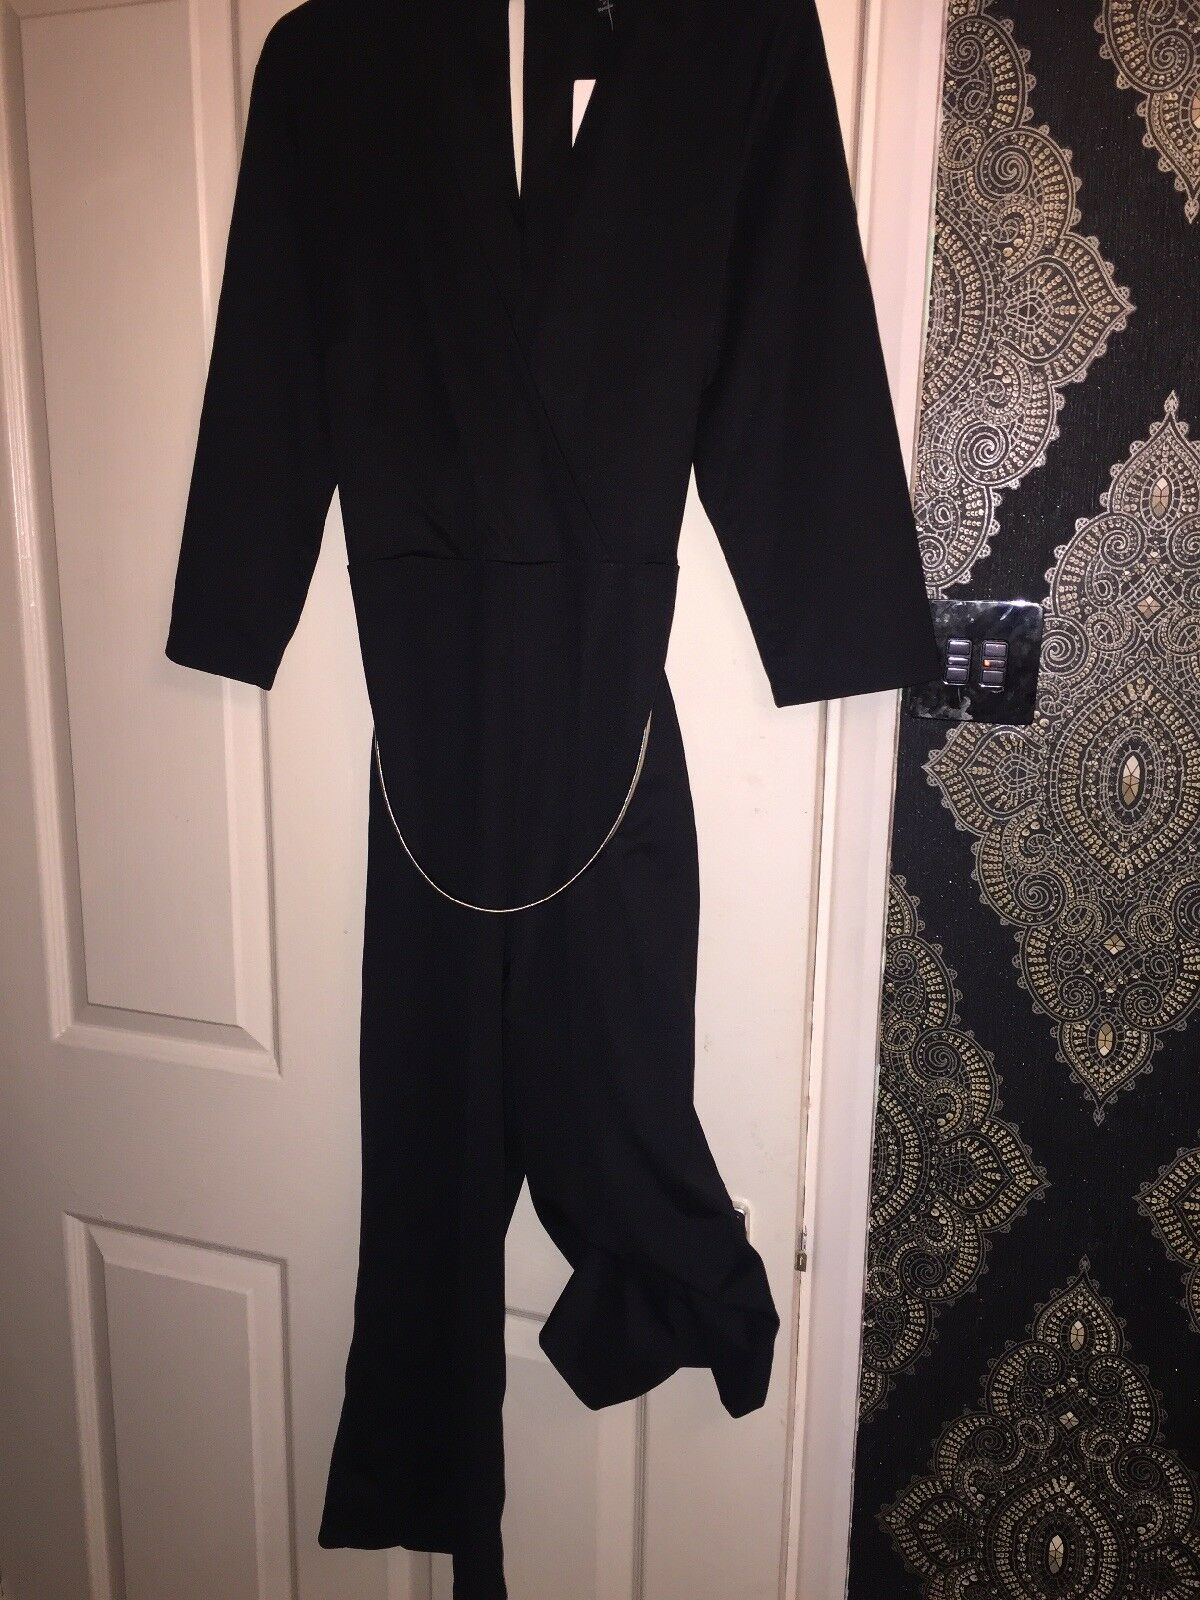 Miss Selfridge Junpsuit Bnwt 14 New Season